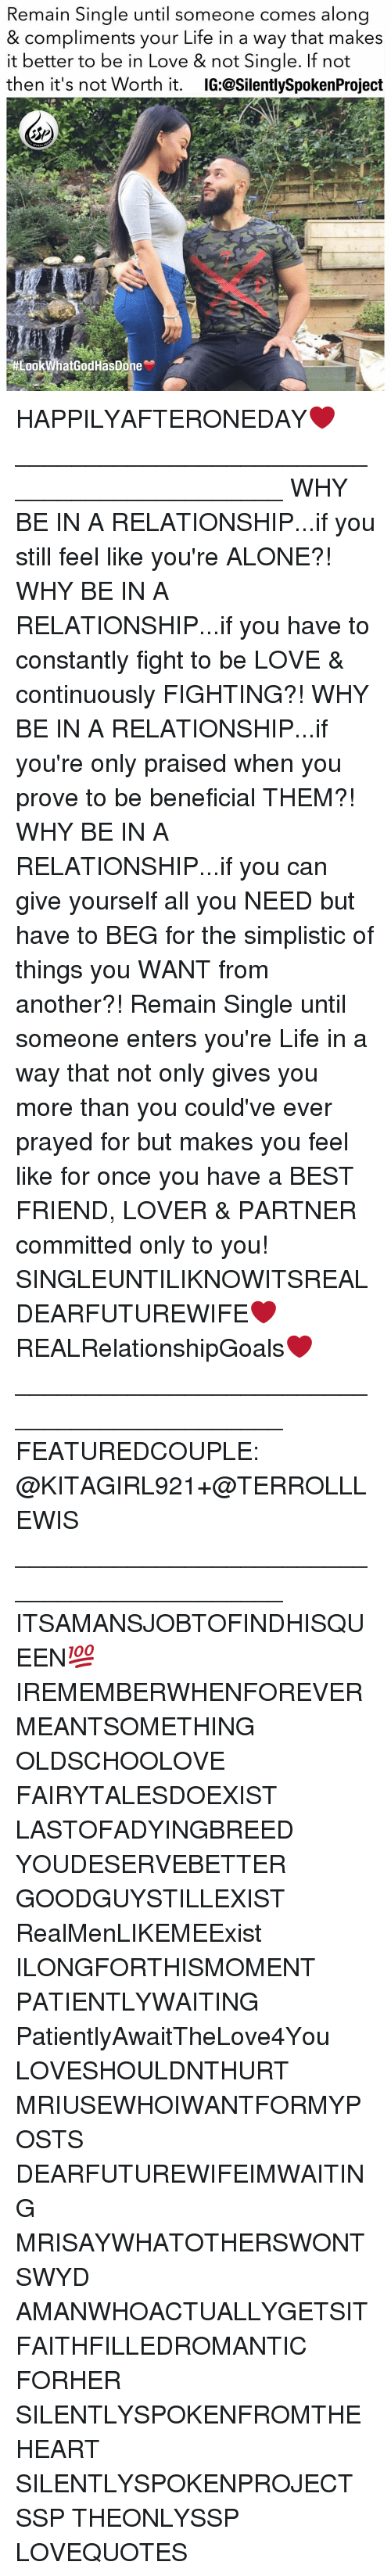 Not Single: Remain Single until someone comes along  & compliments your Life in a way that makes  it better to be in Love & not Single. If not  then it's not Worth it  IG:@SilentlySpokenProject  SP  #Look WhatGodHasDone HAPPILYAFTERONEDAY❤️ ____________________________________________ WHY BE IN A RELATIONSHIP...if you still feel like you're ALONE?! WHY BE IN A RELATIONSHIP...if you have to constantly fight to be LOVE & continuously FIGHTING?! WHY BE IN A RELATIONSHIP...if you're only praised when you prove to be beneficial THEM?! WHY BE IN A RELATIONSHIP...if you can give yourself all you NEED but have to BEG for the simplistic of things you WANT from another?! Remain Single until someone enters you're Life in a way that not only gives you more than you could've ever prayed for but makes you feel like for once you have a BEST FRIEND, LOVER & PARTNER committed only to you! SINGLEUNTILIKNOWITSREAL DEARFUTUREWIFE❤️ REALRelationshipGoals❤️ ____________________________________________ FEATUREDCOUPLE: @KITAGIRL921+@TERROLLLEWIS ____________________________________________ ITSAMANSJOBTOFINDHISQUEEN💯 IREMEMBERWHENFOREVERMEANTSOMETHING OLDSCHOOLOVE FAIRYTALESDOEXIST LASTOFADYINGBREED YOUDESERVEBETTER GOODGUYSTILLEXIST RealMenLIKEMEExist ILONGFORTHISMOMENT PATIENTLYWAITING PatientlyAwaitTheLove4You LOVESHOULDNTHURT MRIUSEWHOIWANTFORMYPOSTS DEARFUTUREWIFEIMWAITING MRISAYWHATOTHERSWONT SWYD AMANWHOACTUALLYGETSIT FAITHFILLEDROMANTIC FORHER SILENTLYSPOKENFROMTHEHEART SILENTLYSPOKENPROJECT SSP THEONLYSSP LOVEQUOTES